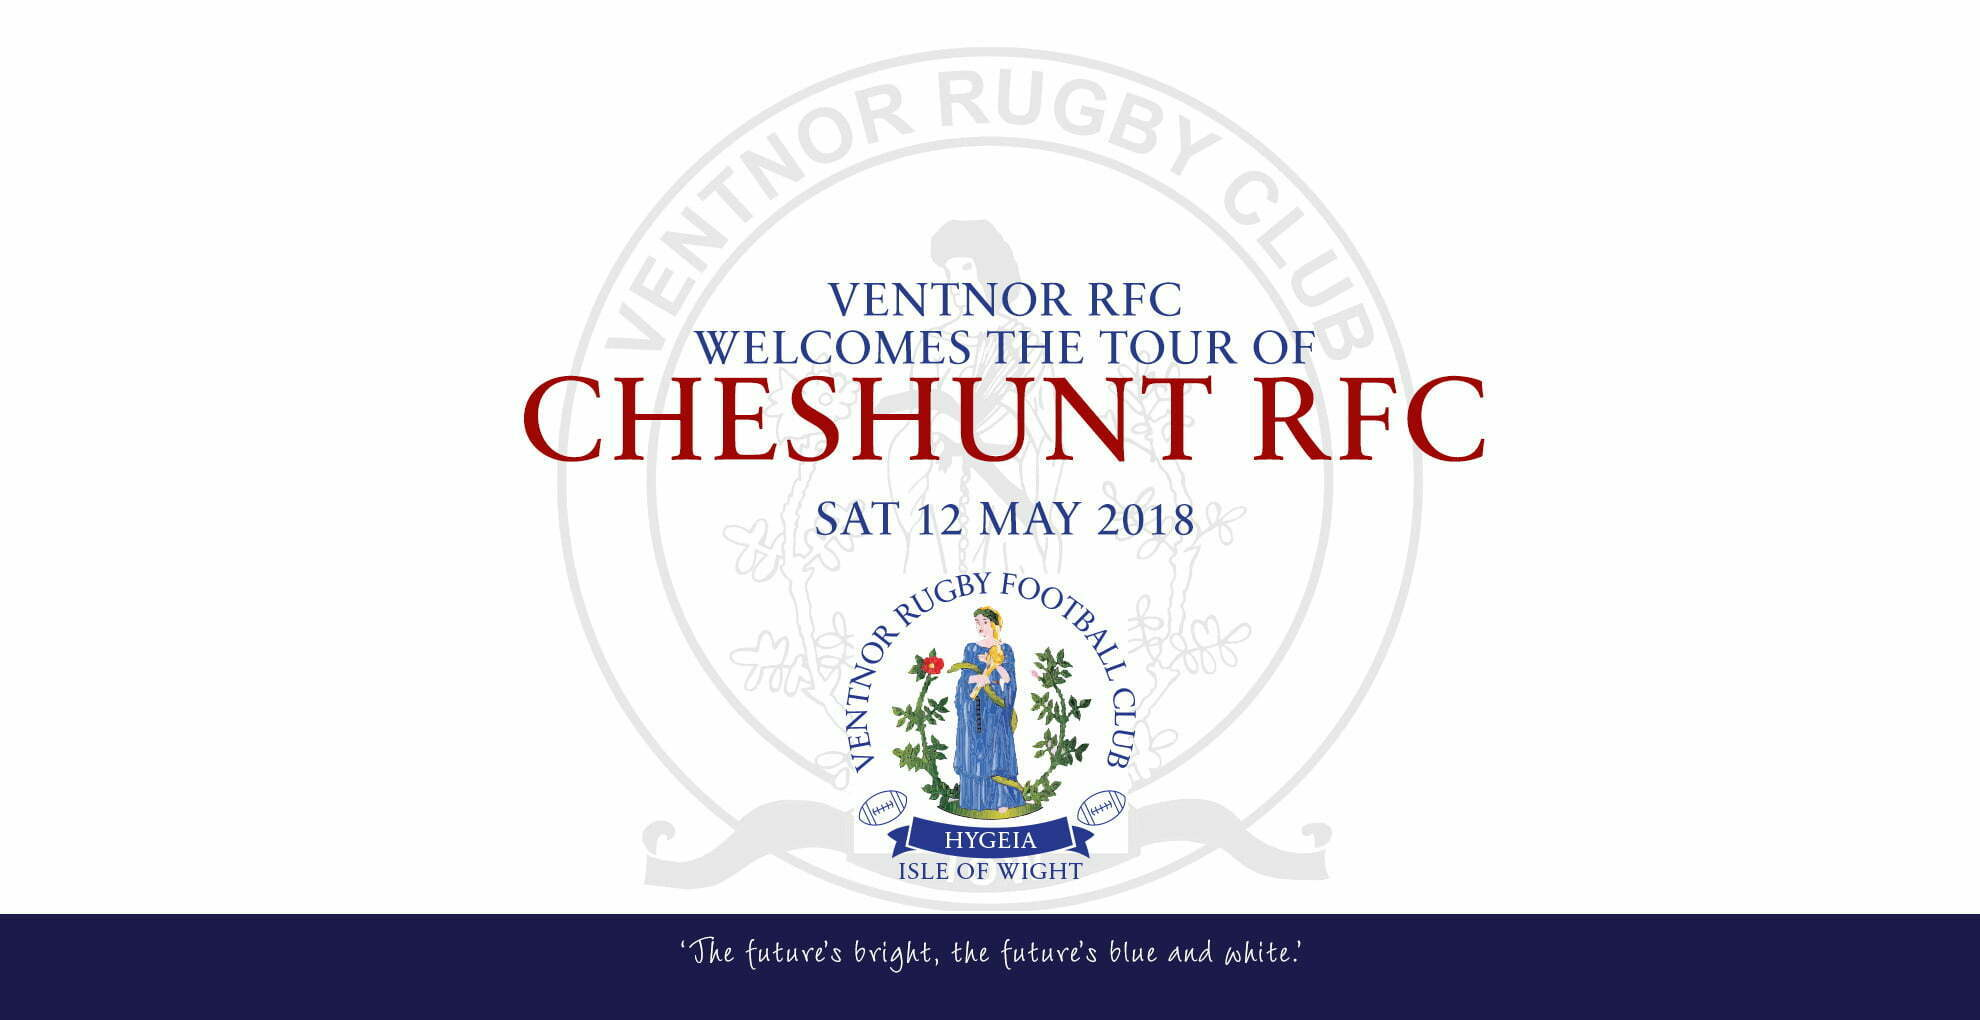 cheshunt-rfc-tour-2018-v-ventnor-rfc-12052018